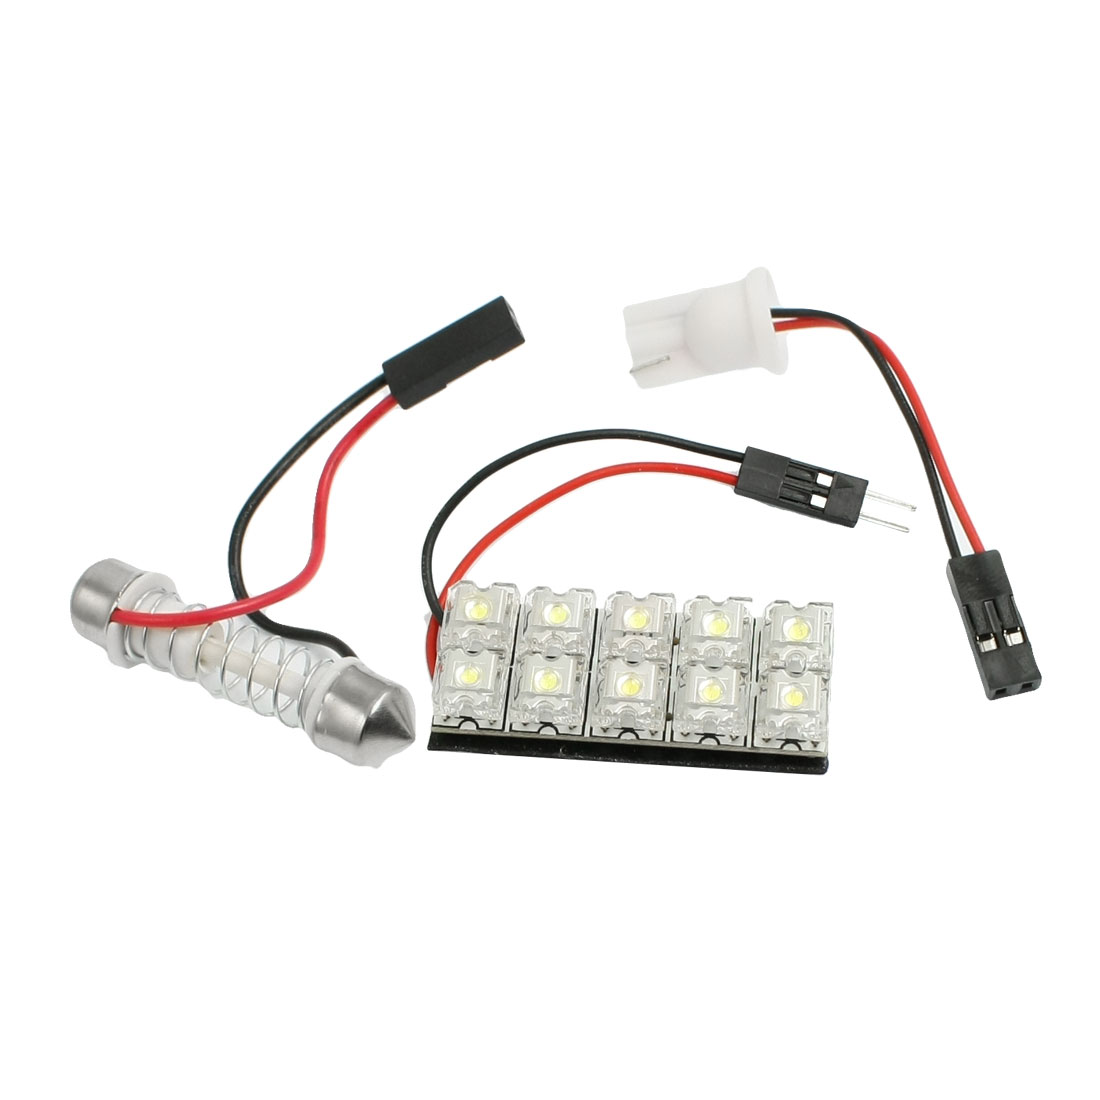 Vehicle Auto Flux Piranha Panel T10 10 LED Interior White Festoon Dome Lights